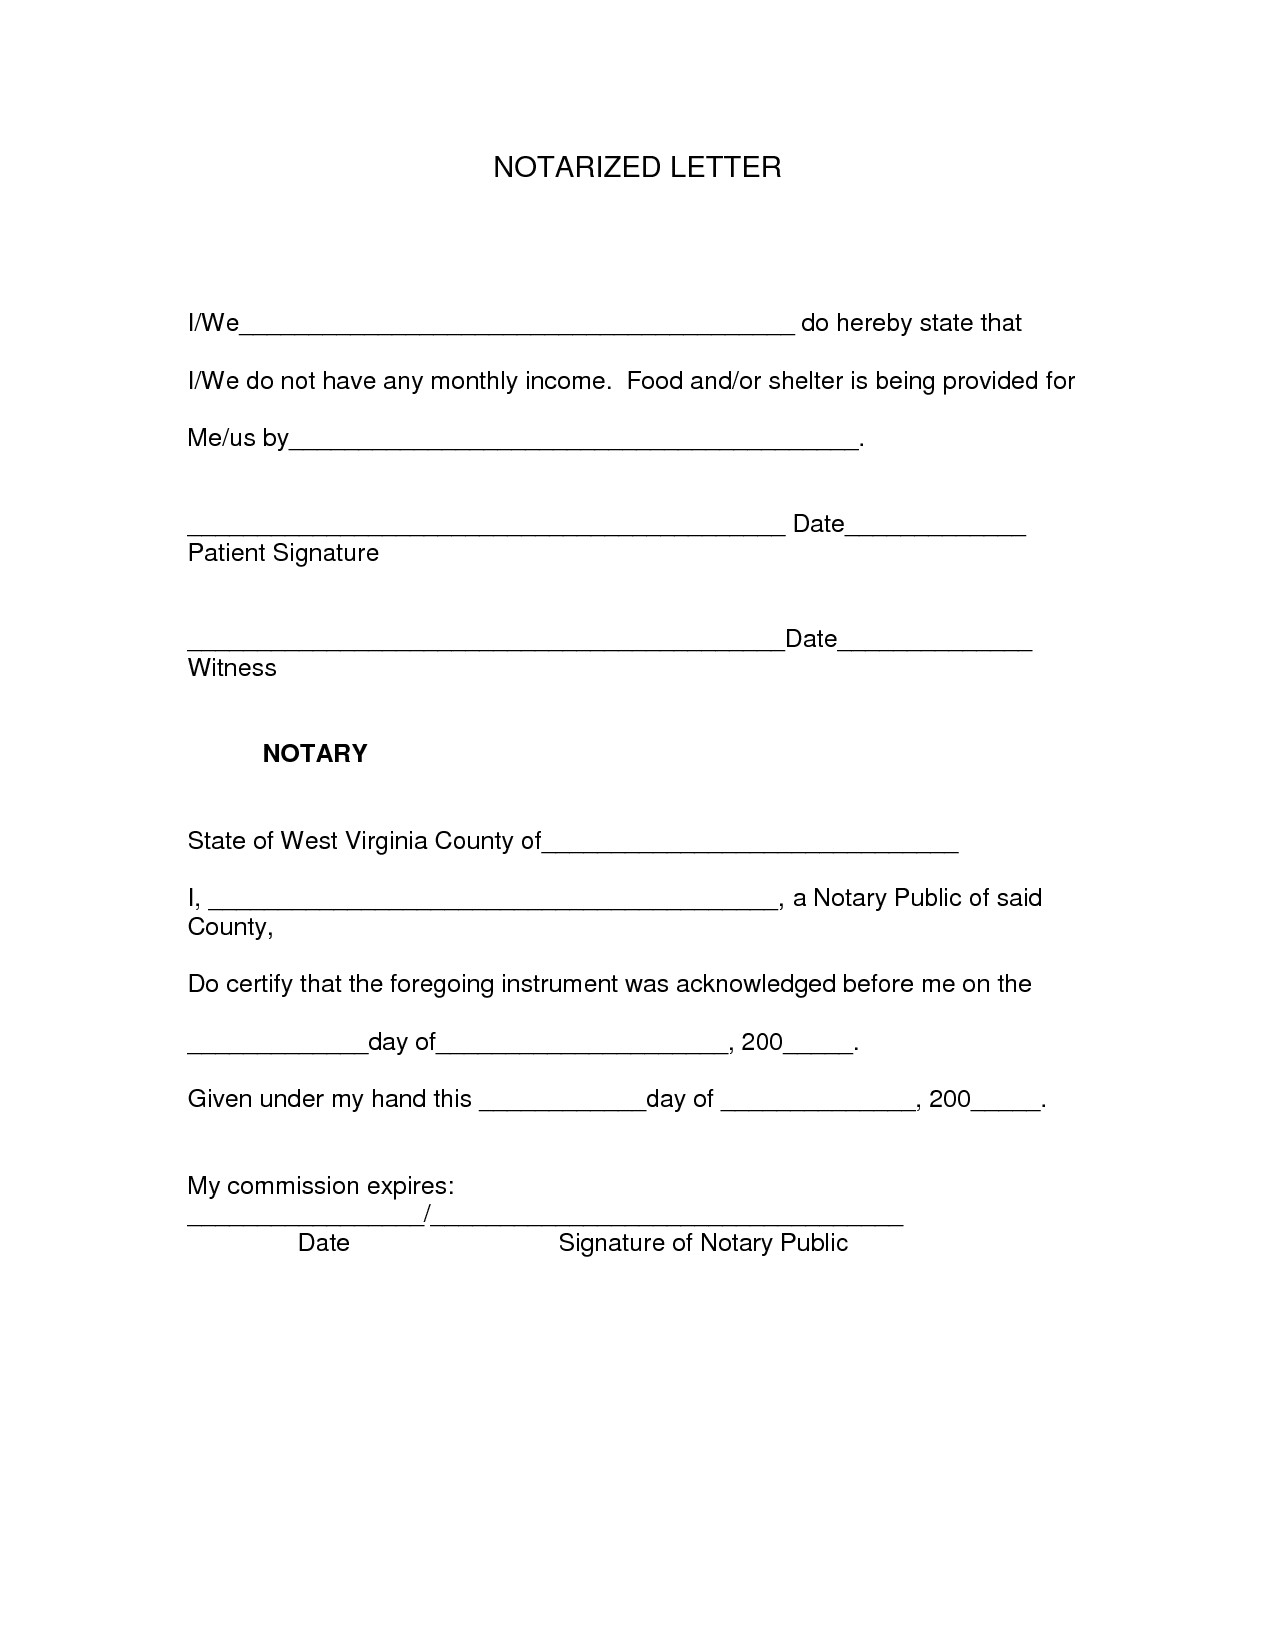 Notarized Letter Template - Notarized Document Template